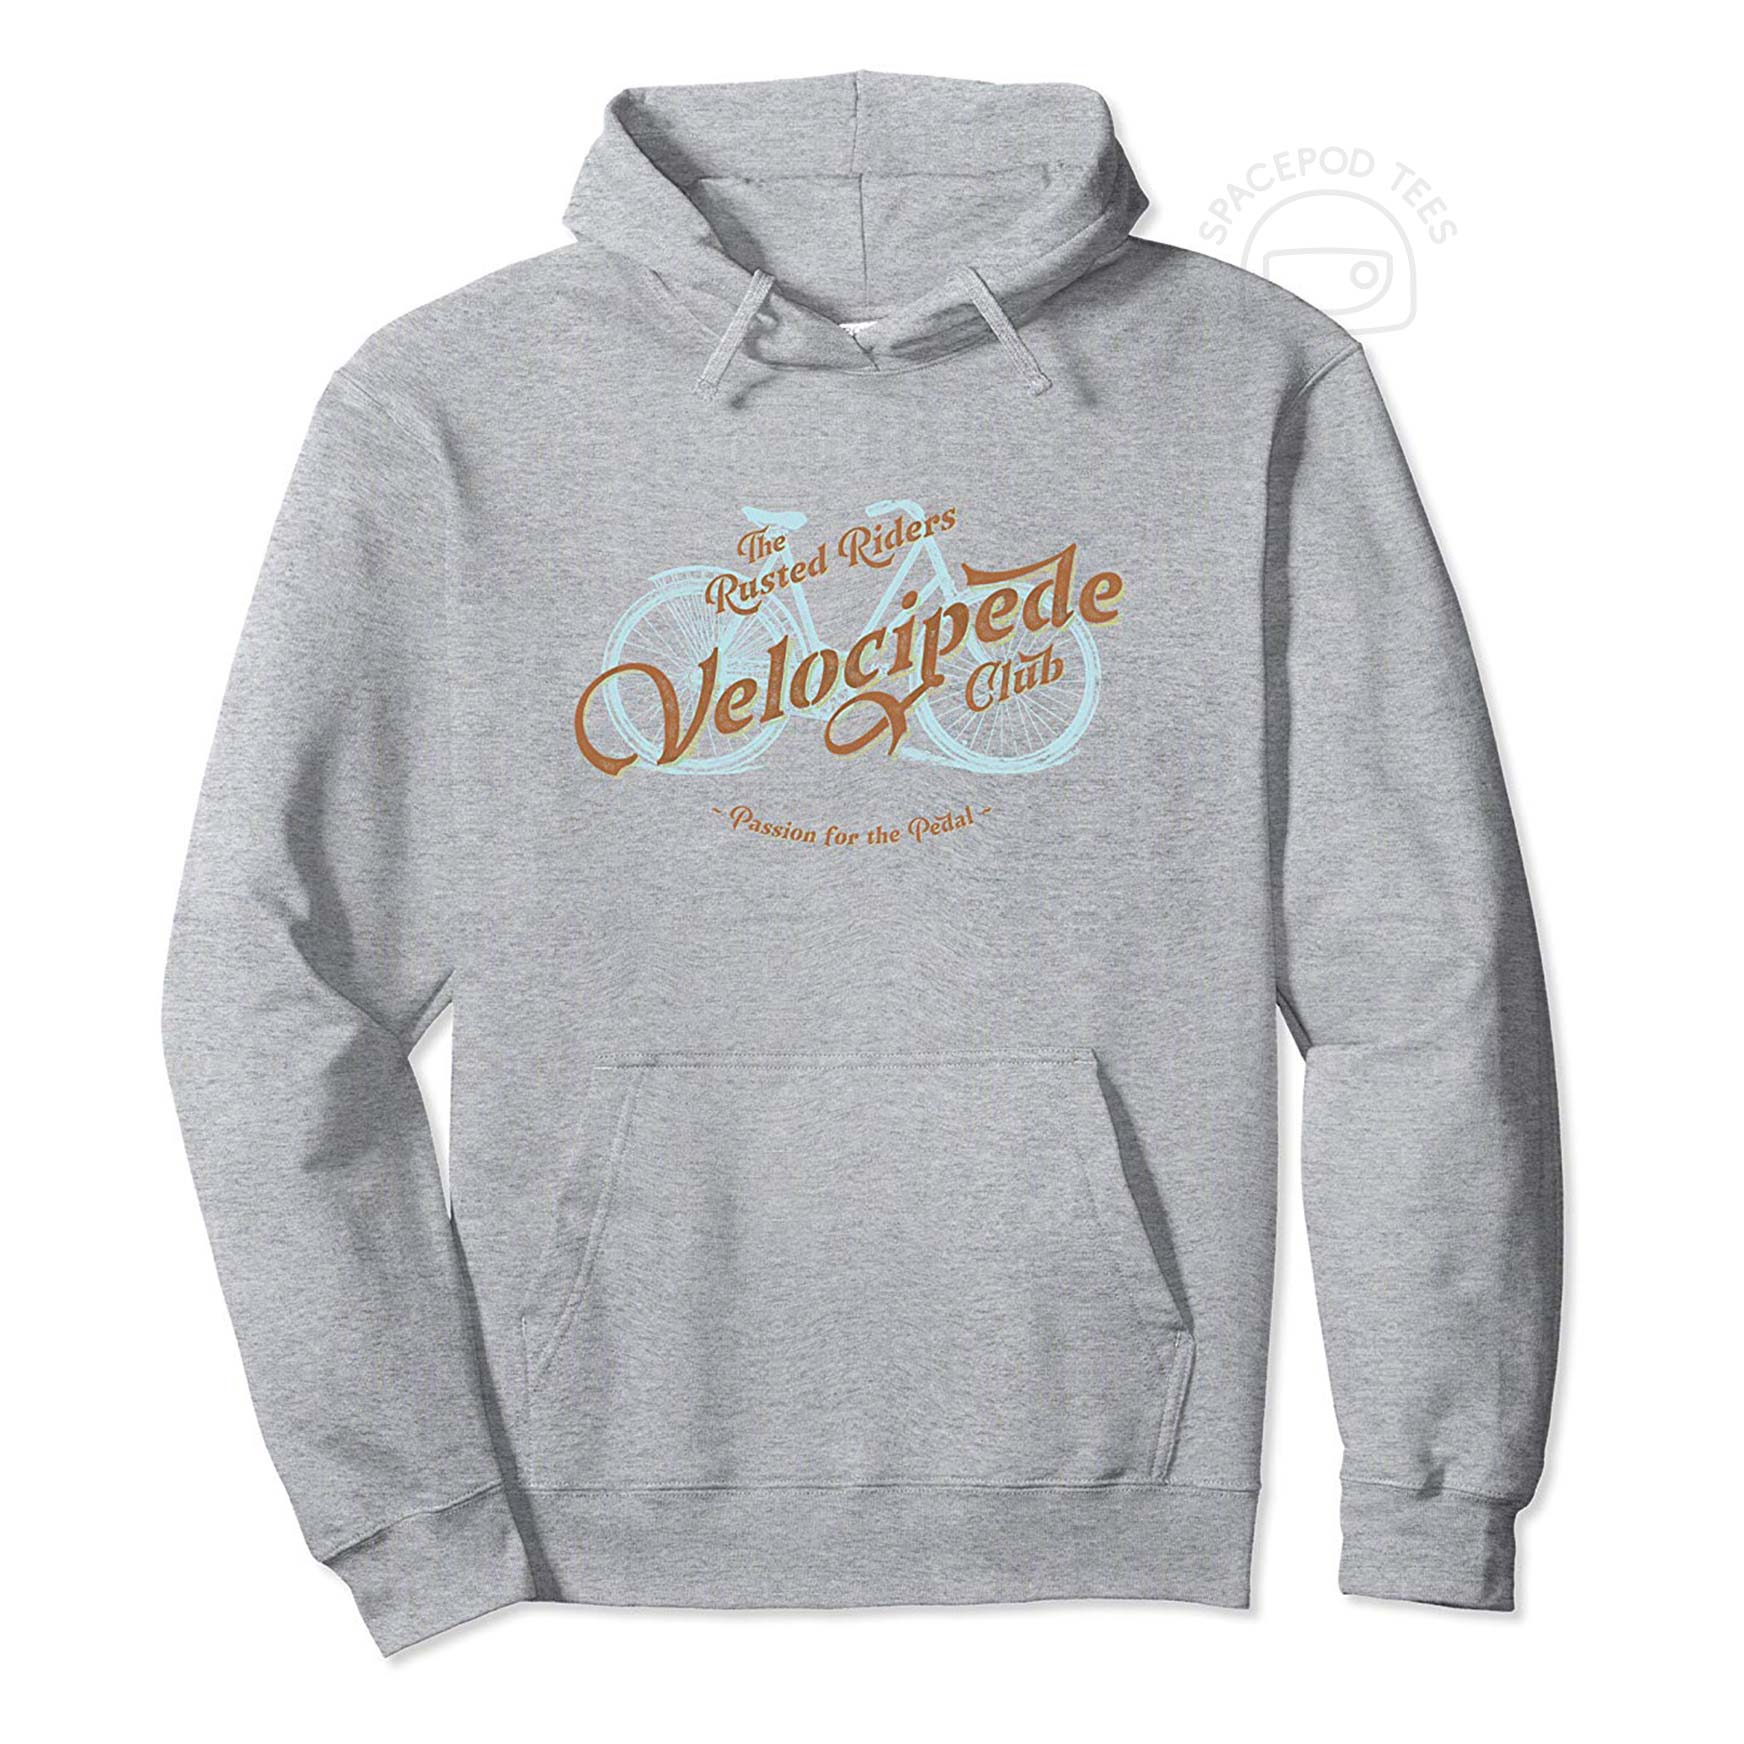 velocipede-club-spacepod-bicycle-heather-gray-hoodie